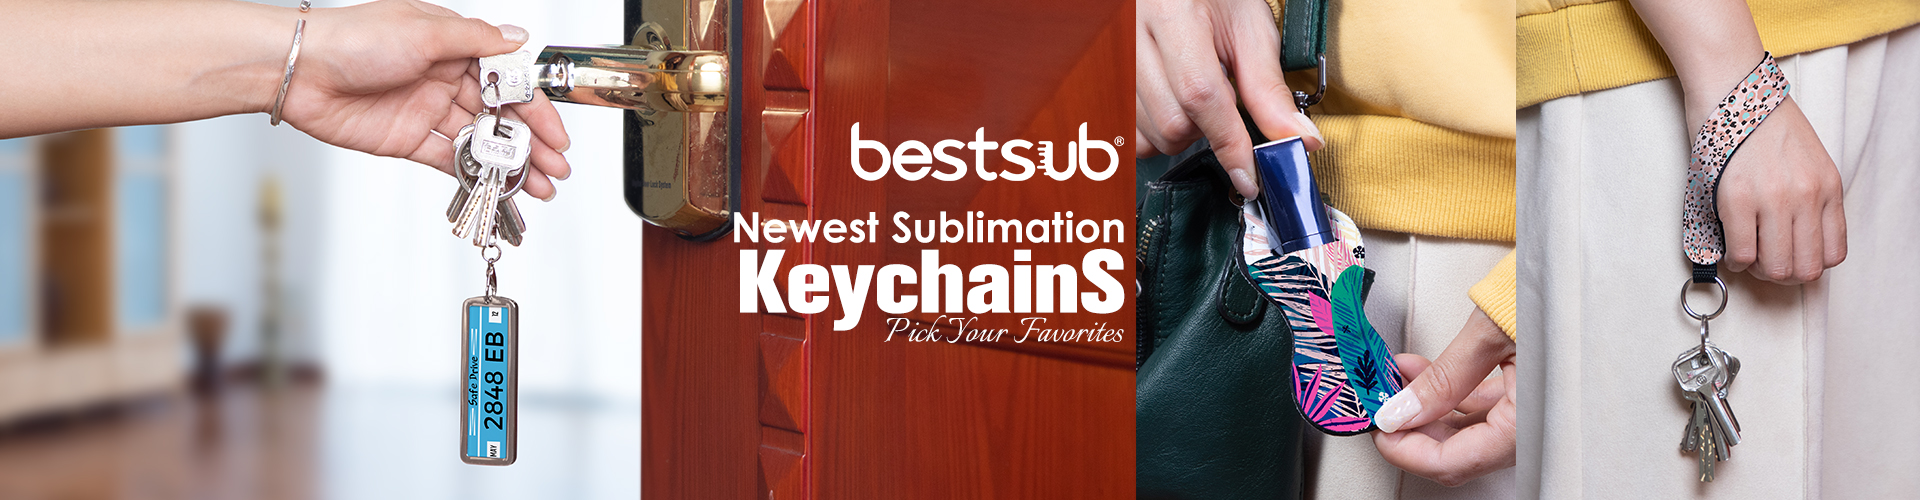 2020-12-30_Newest_Sublimation_Keychains_new_web